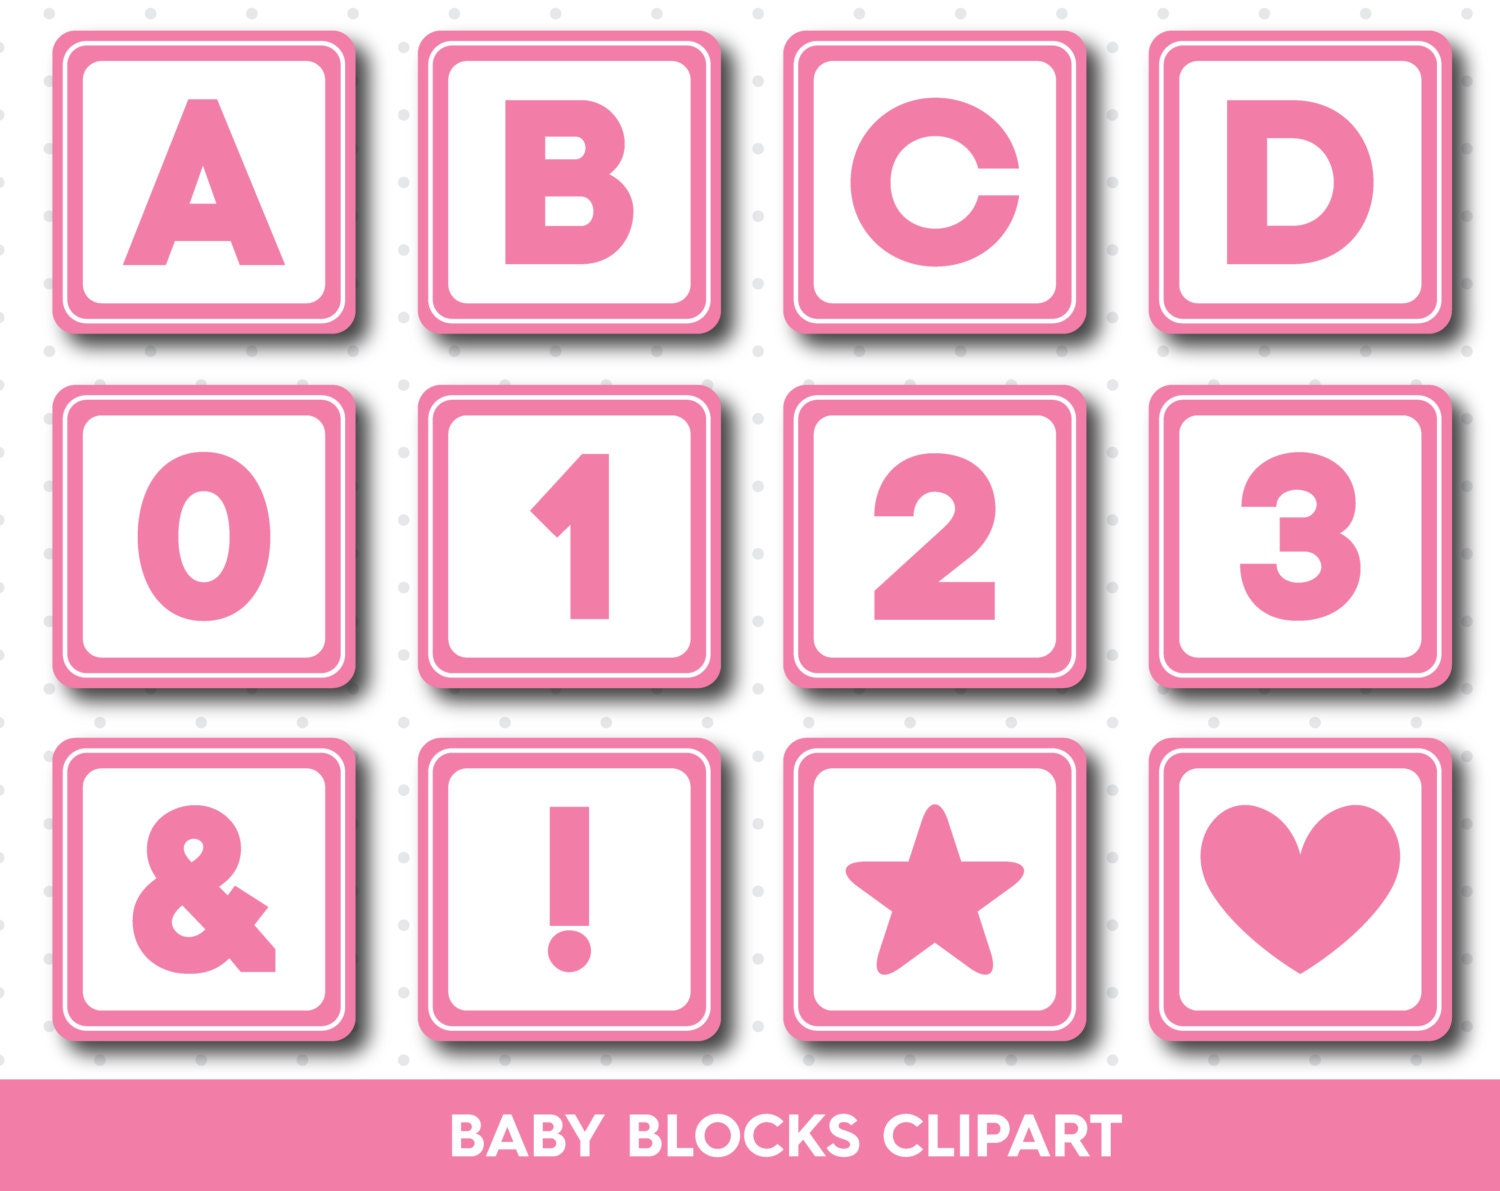 Pink Baby blocks clipart Alphabet Blocks clipart by ...